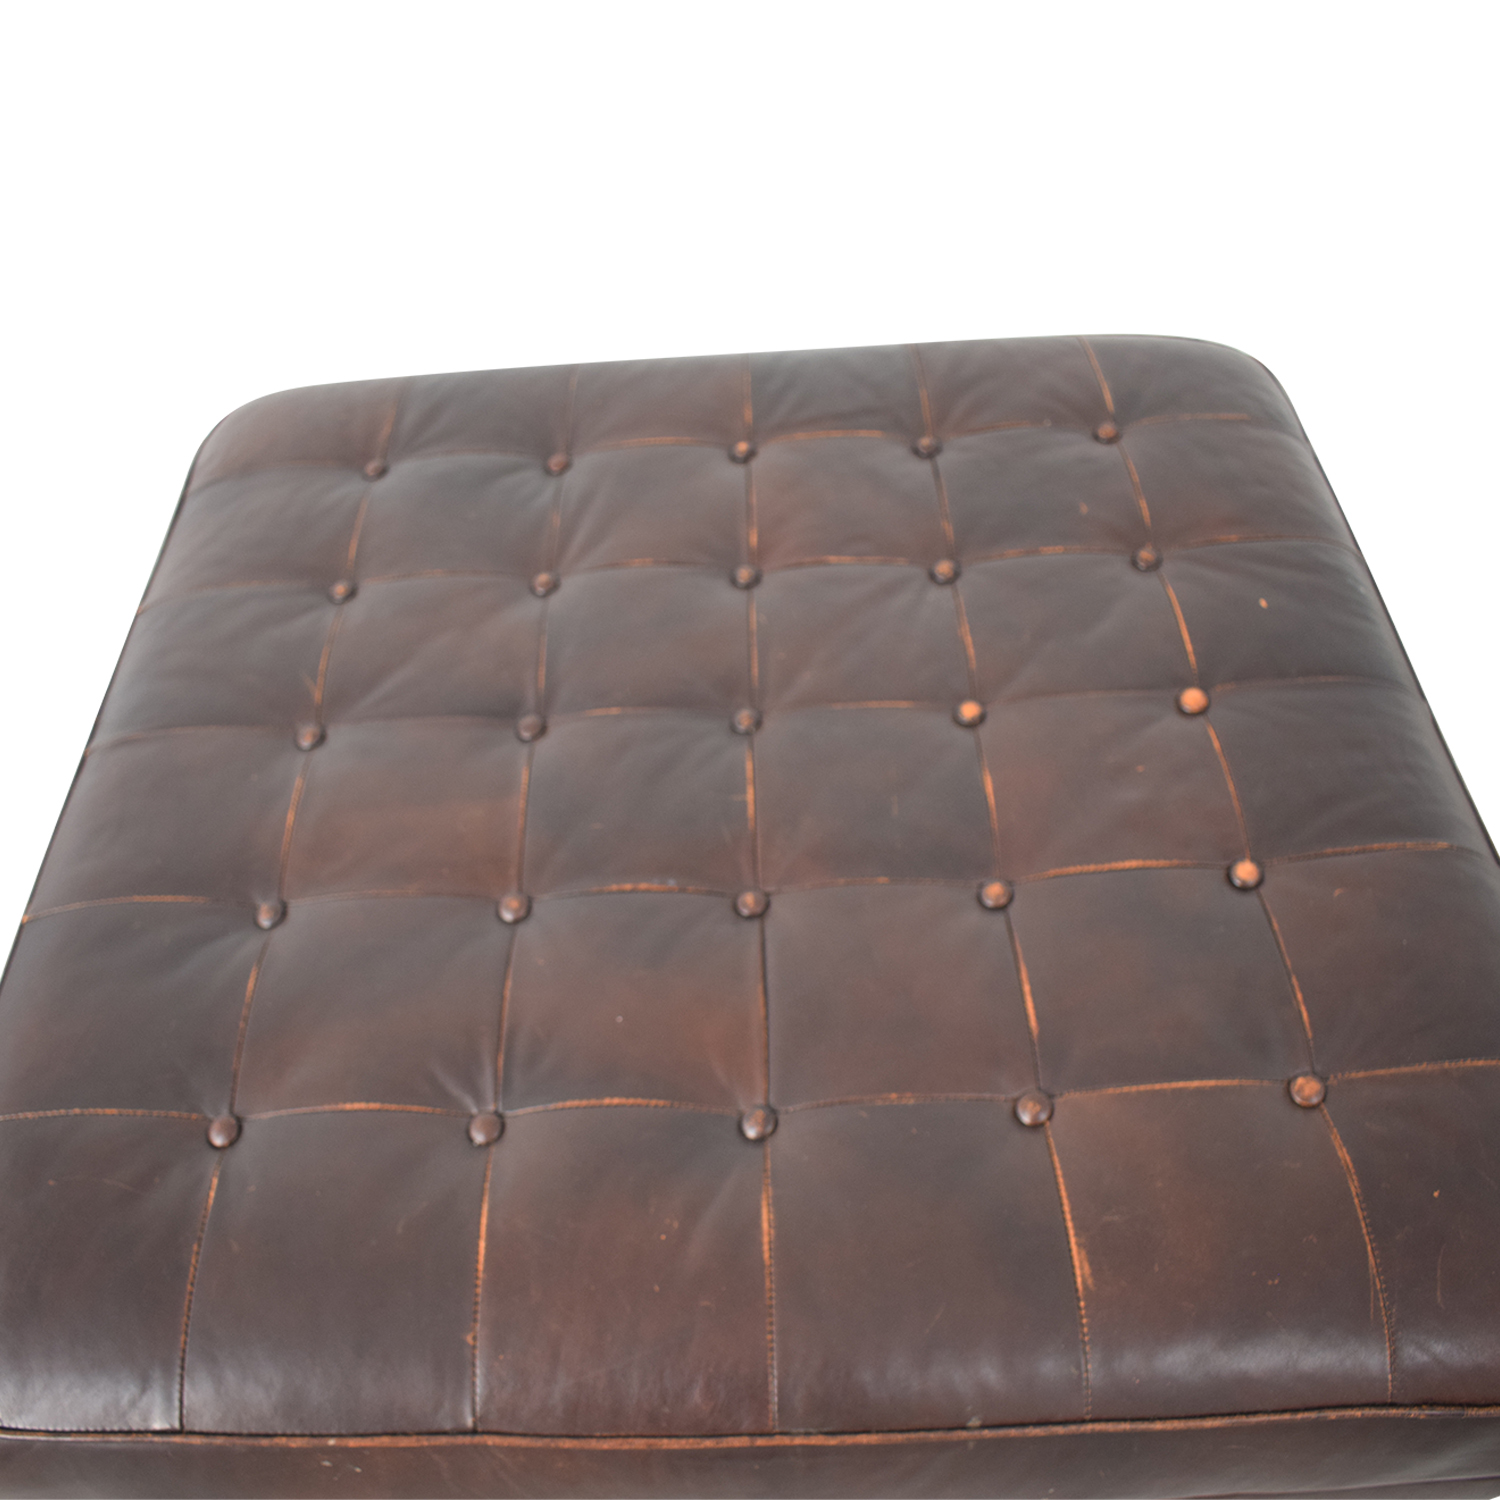 Crate & Barrel Crate & Barrel Brown Tufted Ottoman coupon